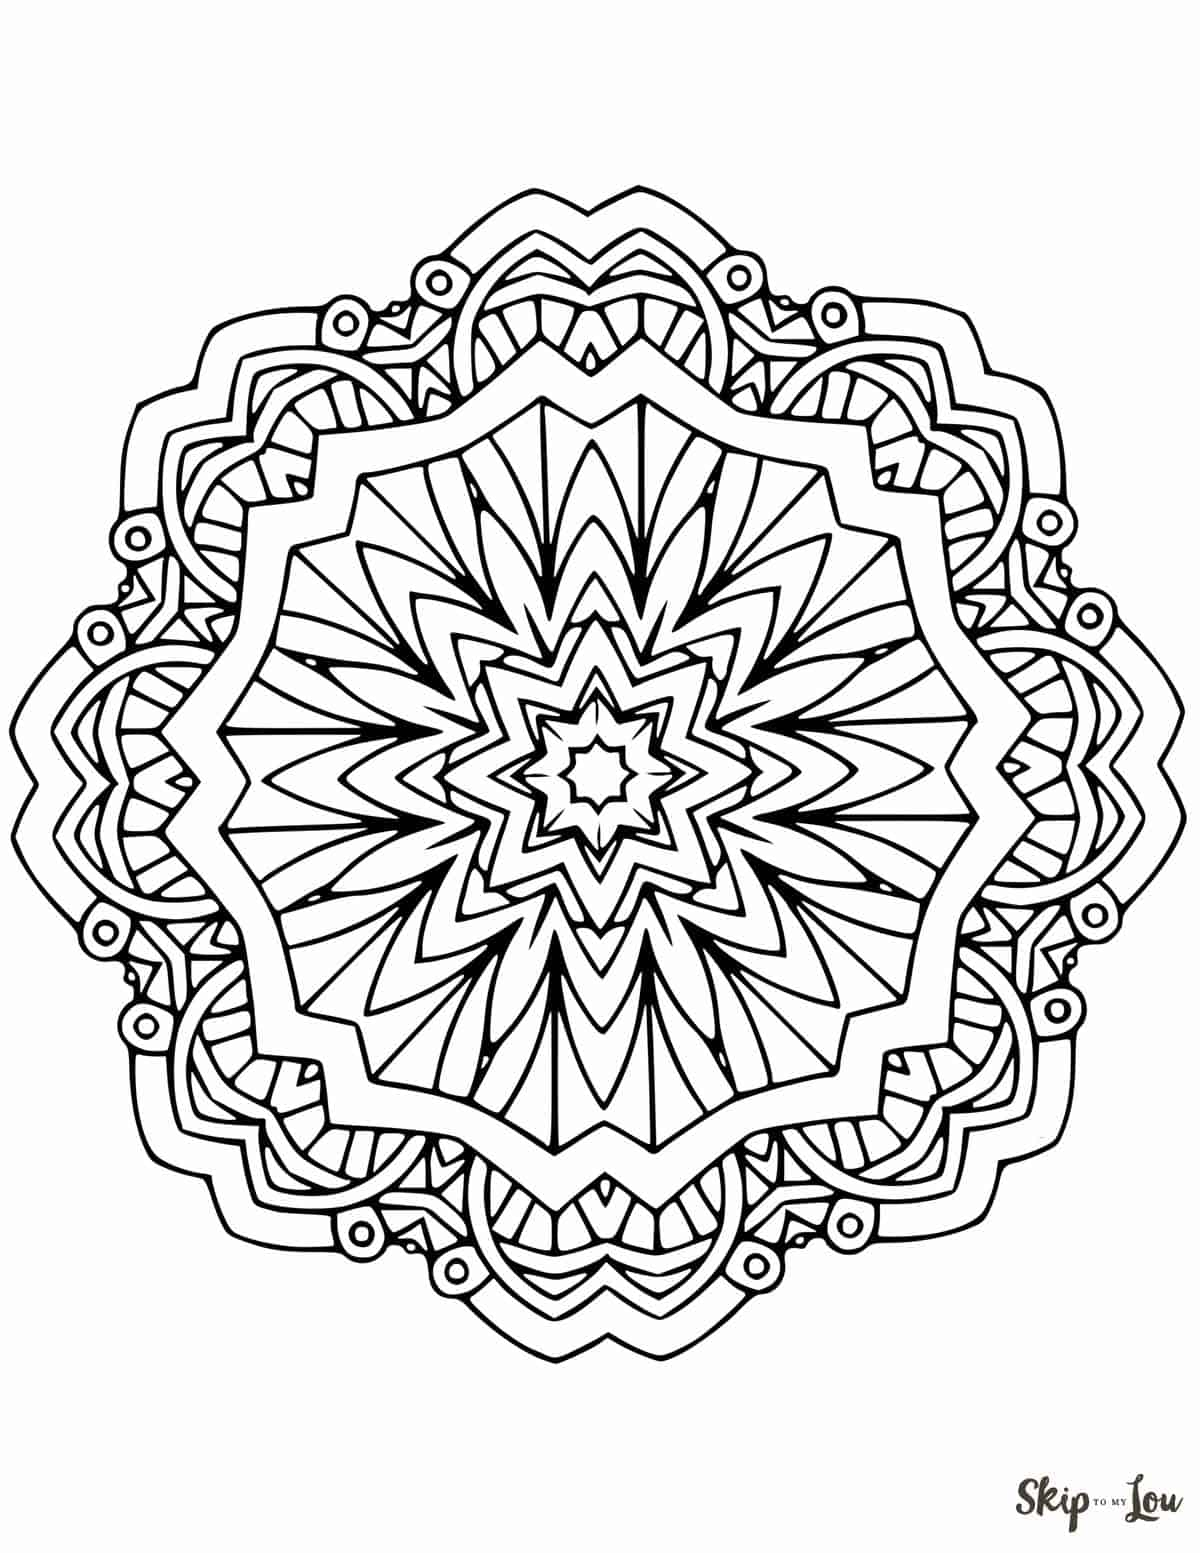 Beautiful FREE Mandala Coloring Pages | Skip To My Lou | free printable mandala coloring pages for adults only